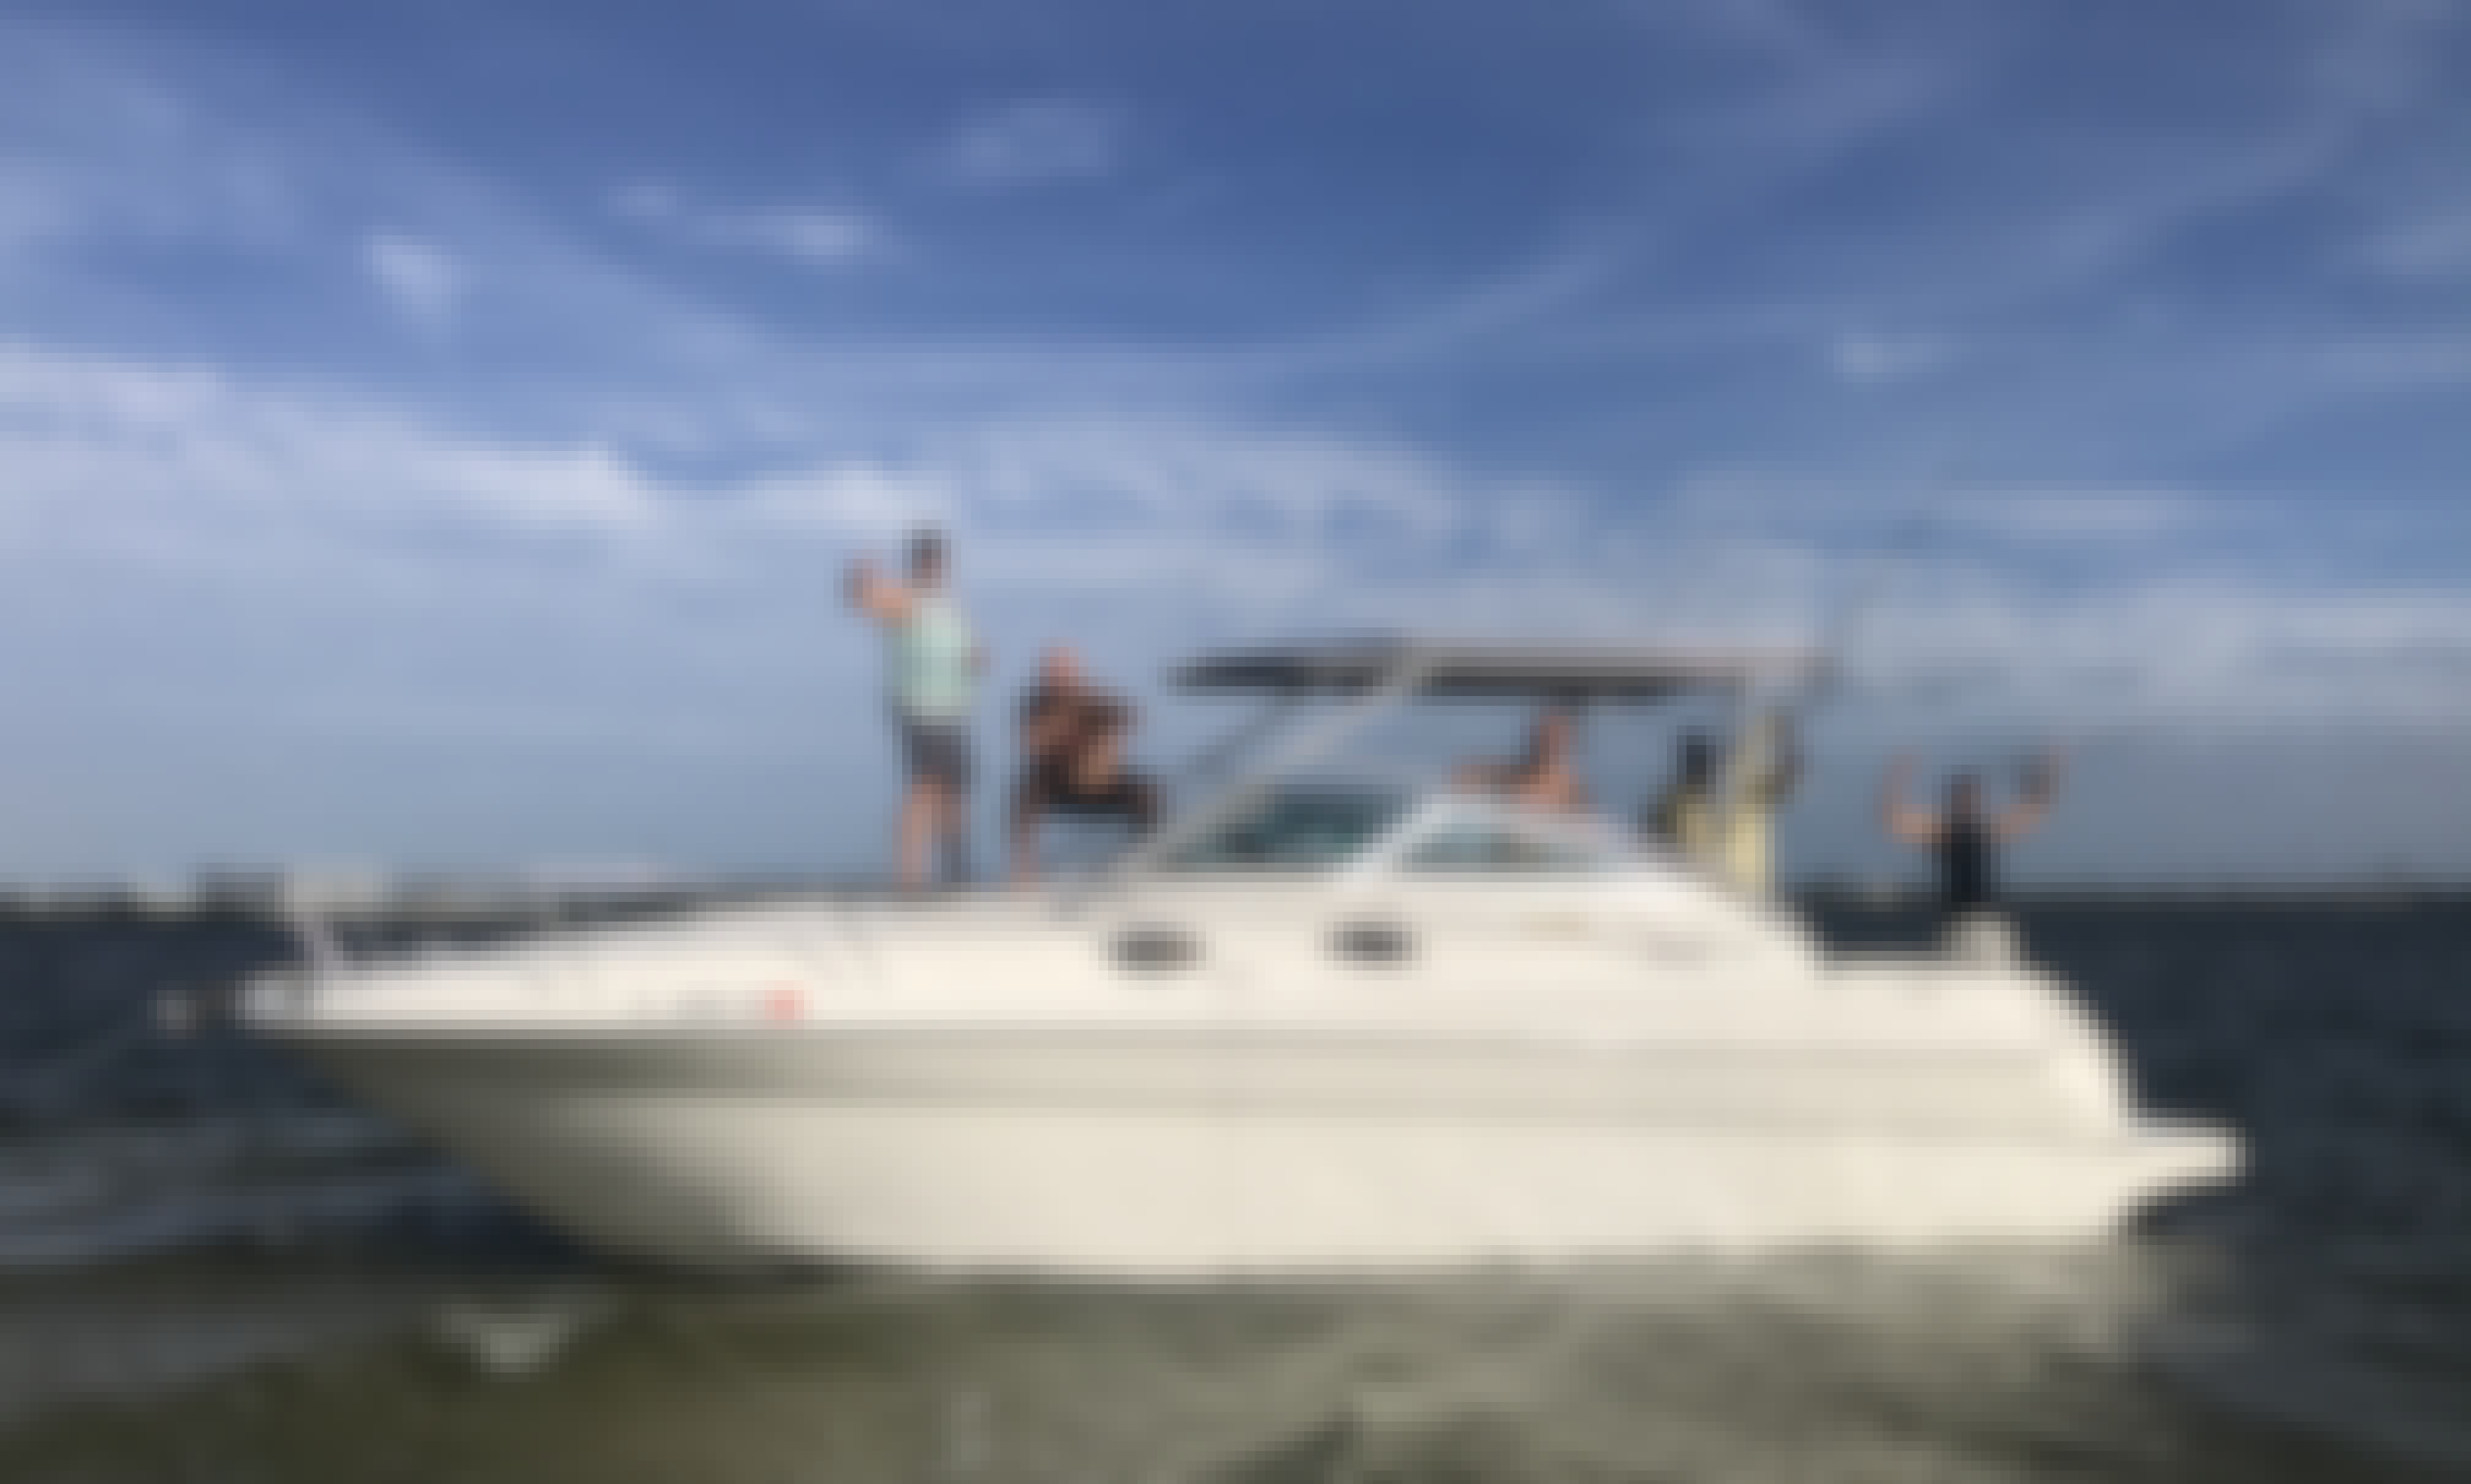 Charter this 300 HP Sea Ray Sundancer Cuddy Cabin for 6 People in Cape Canaveral/Merritt Island, Florida